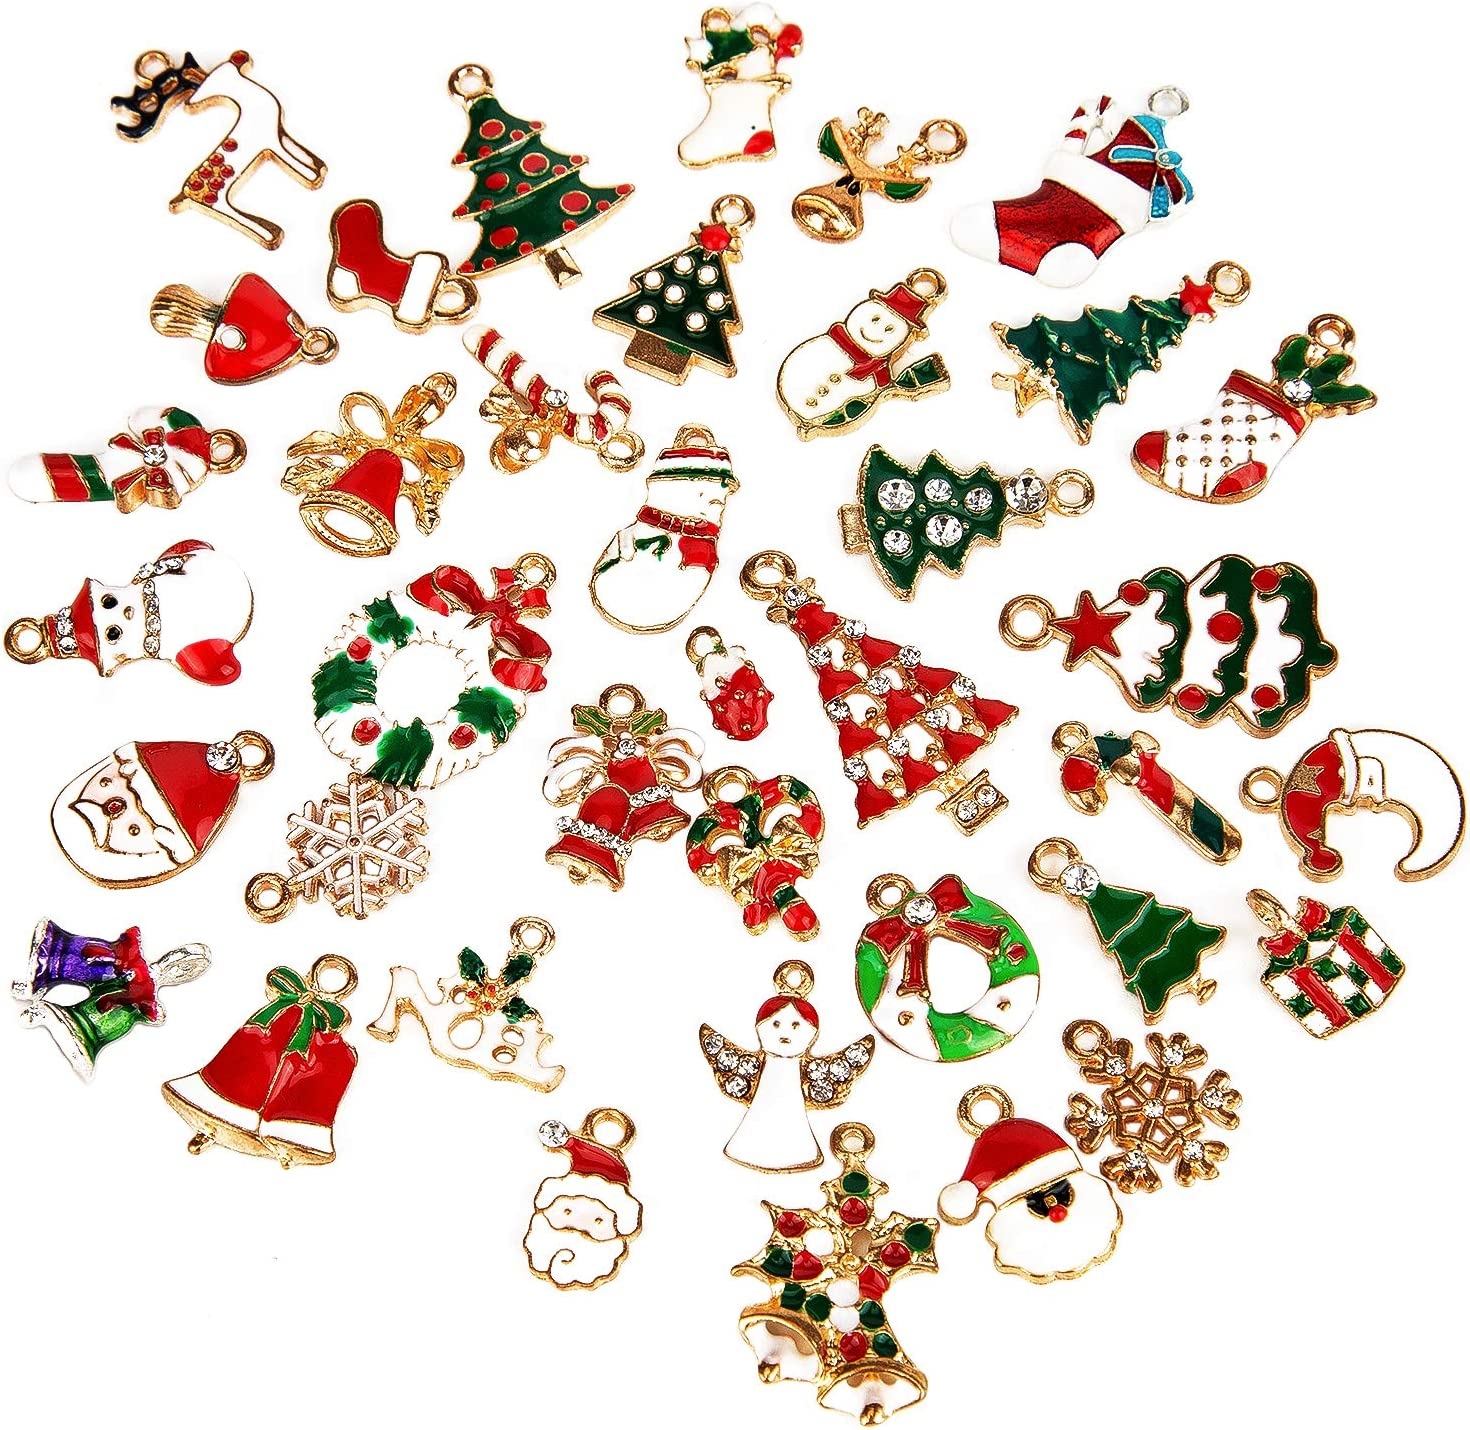 SAVITA 38Pcs Christmas Pendant Charm DIY Christmas Ornaments for Xmas Charm Decorations Jewelry Bracelet Making Clothes Sewing Accessories